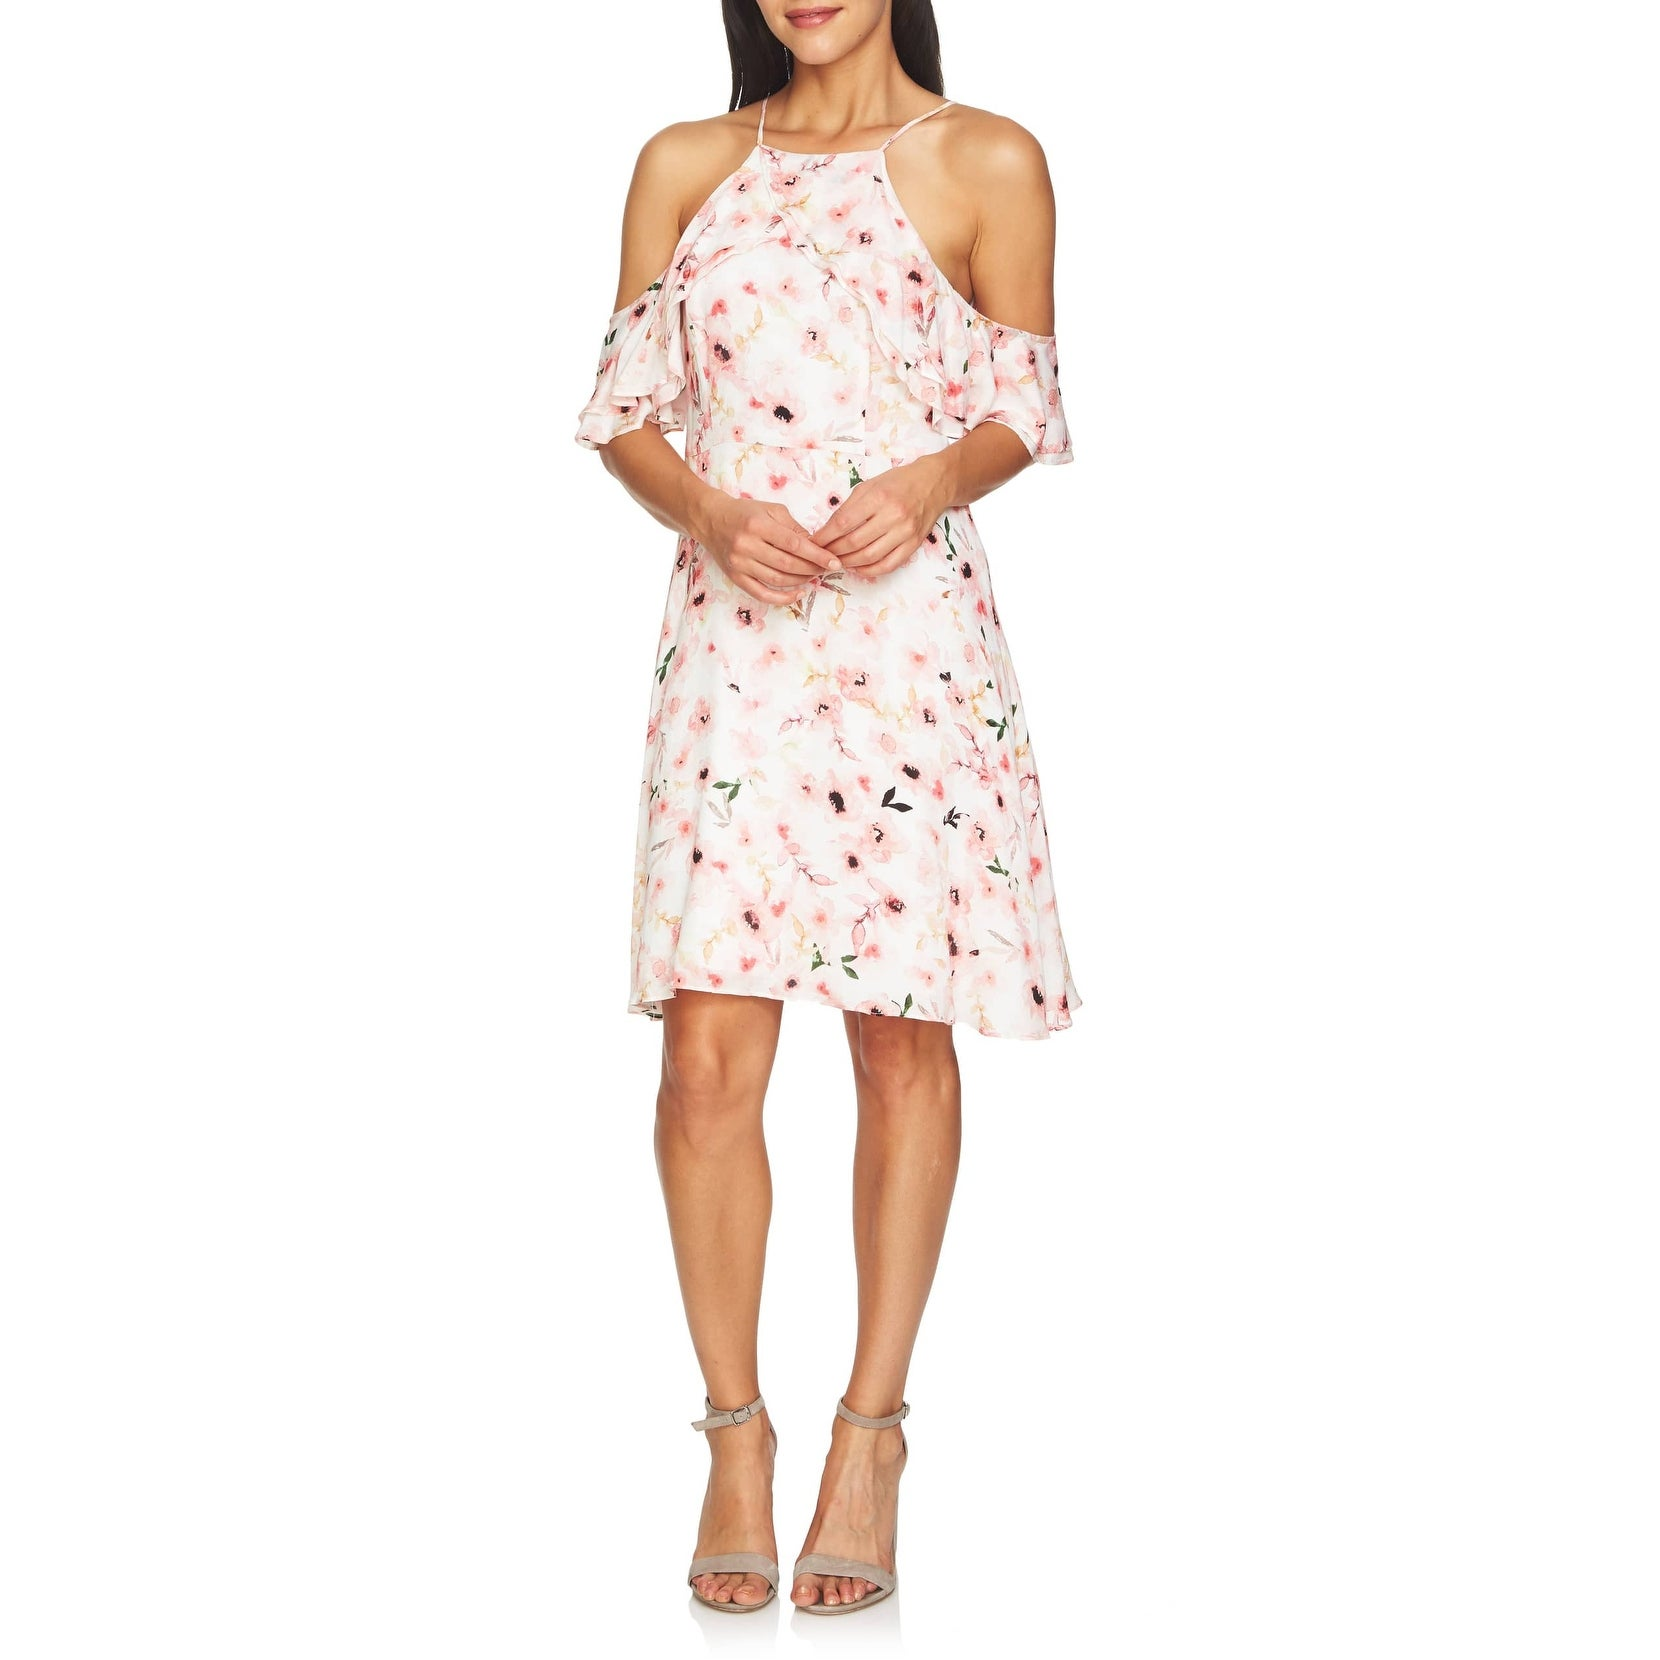 6add12ccbe9 Buy CeCe Casual Dresses Online at Overstock